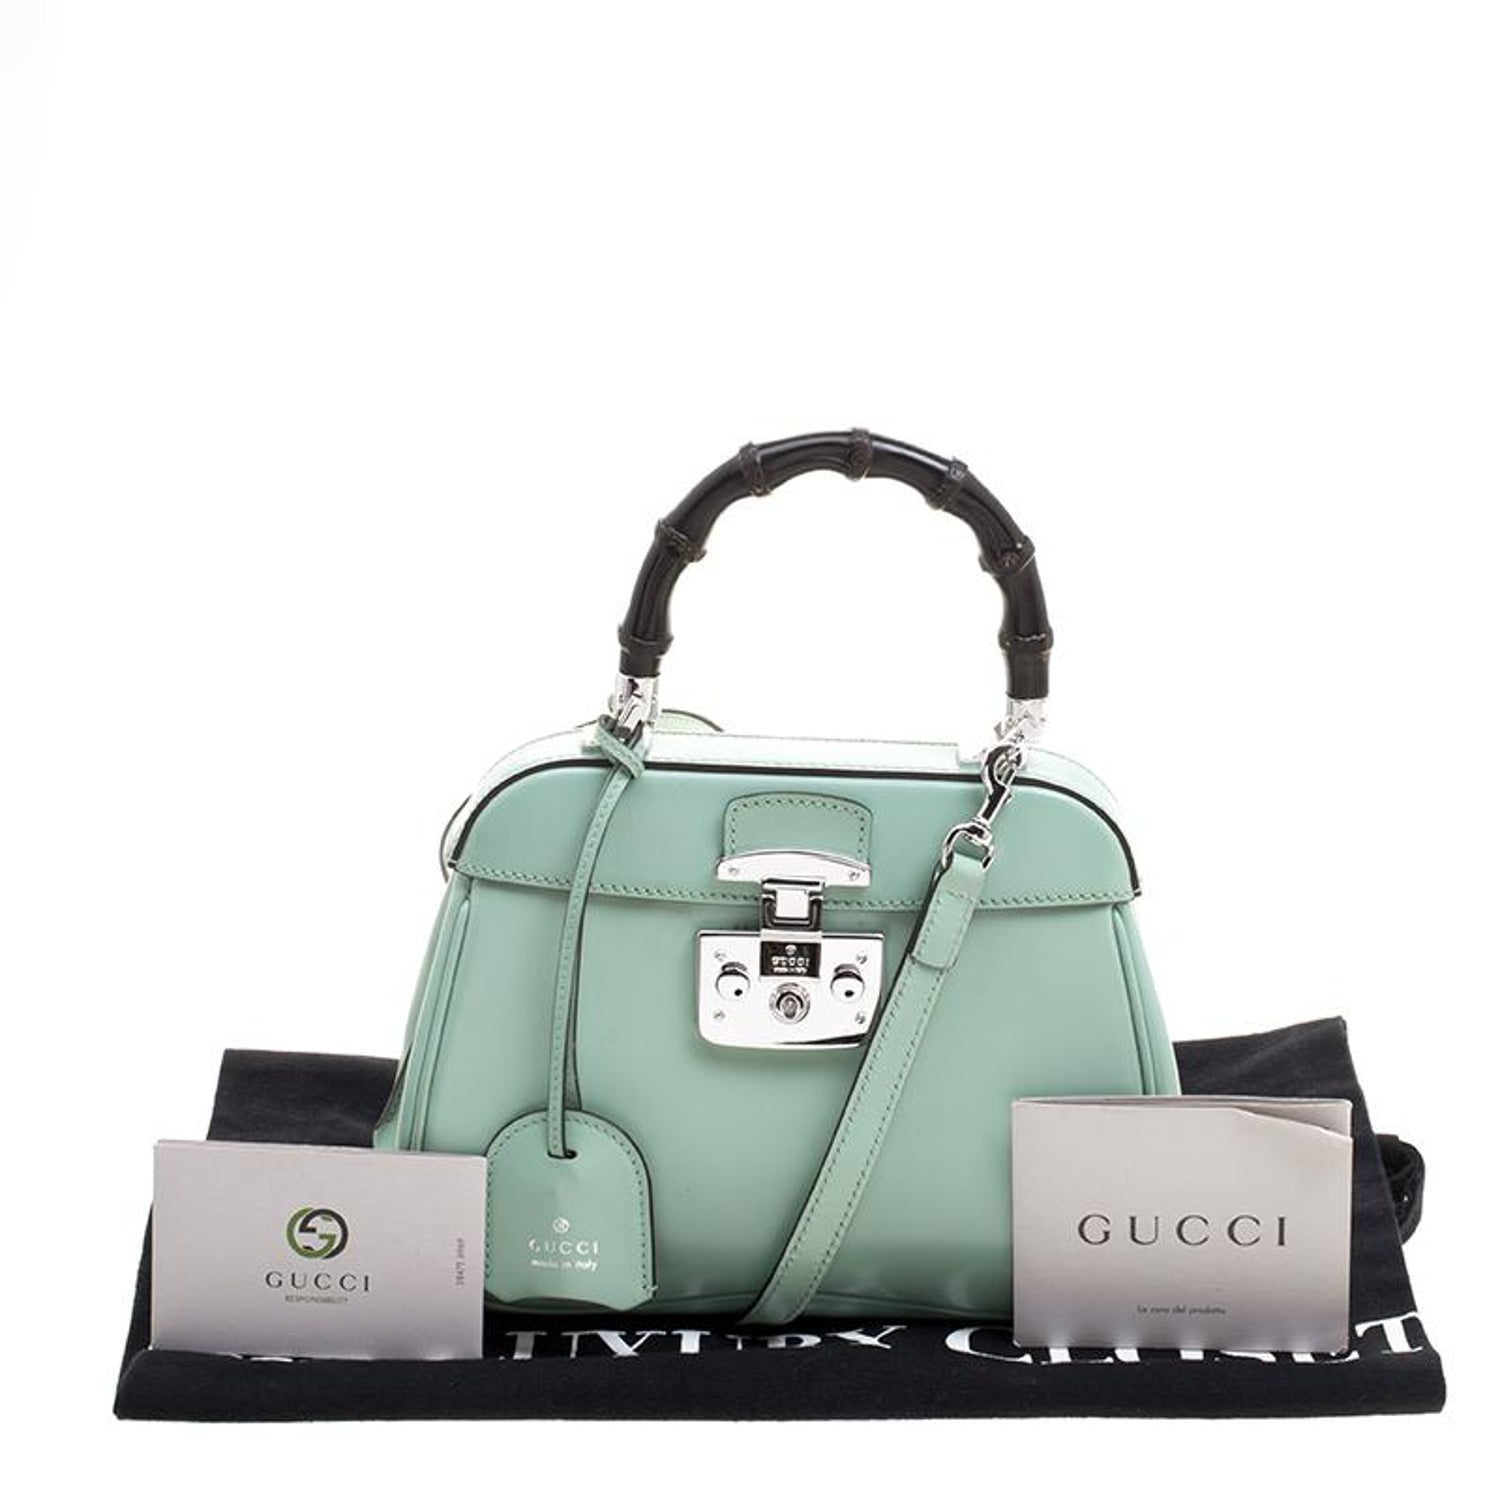 e996674053d Gucci Mint Green Patent Leather Mini Lady Lock Bamboo Top Handle Bag at  1stdibs